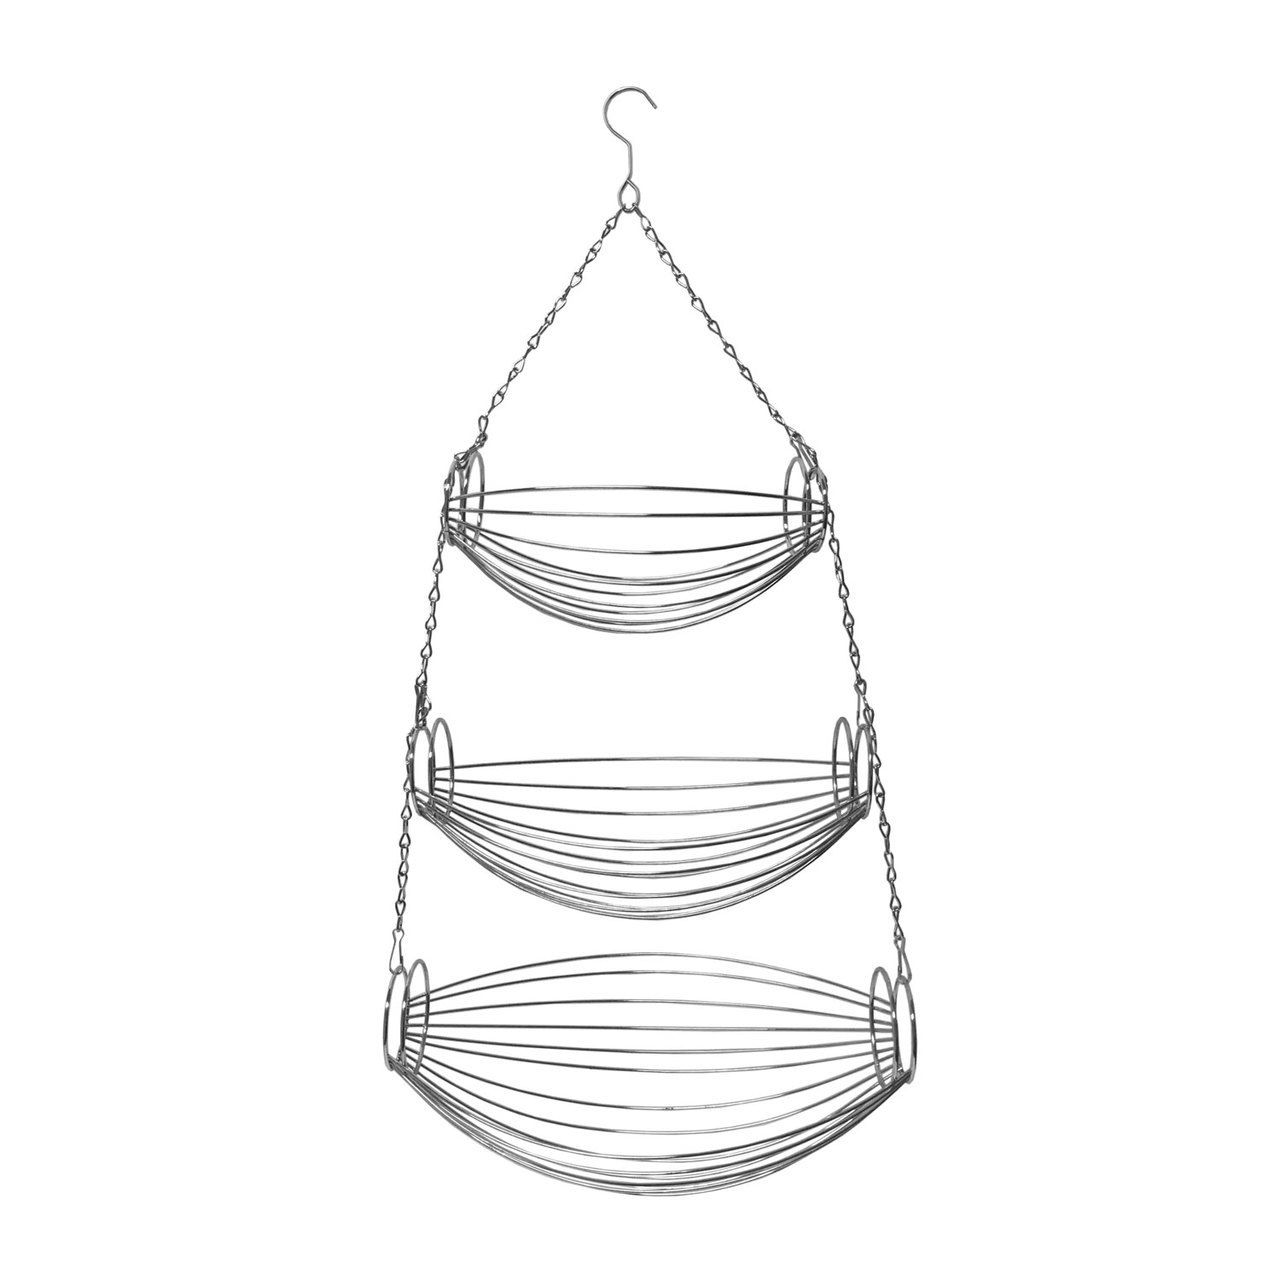 3 Tier Chrome Wire Hanging Basket Fruit Organizer Basket